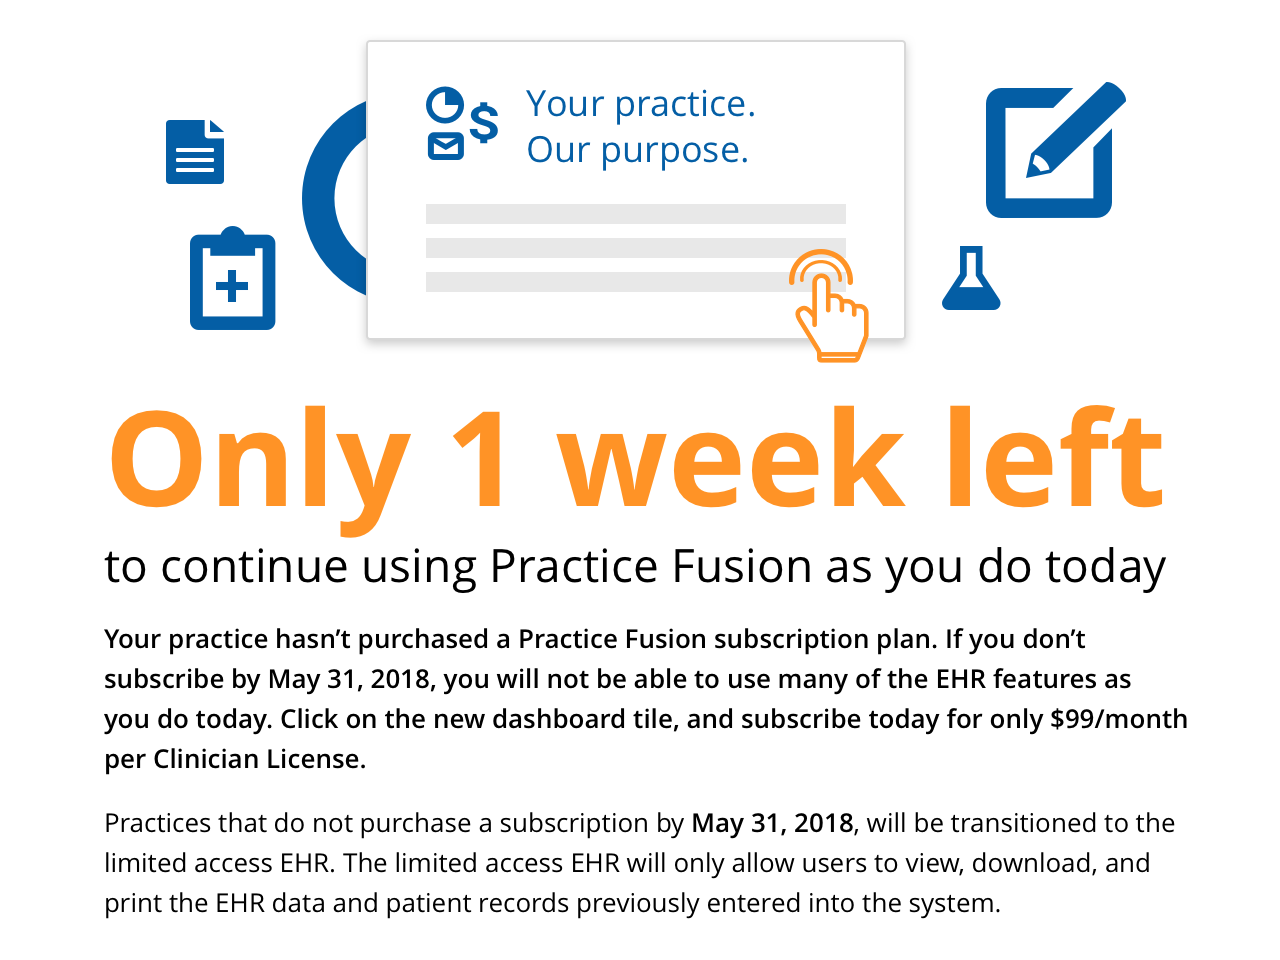 Your practice hasn't purchased a Practice Fusion subscription plan. If you don't subscribe by May 31, 2018, you will not be able to use many of the EHR features as you do today. Click on the new dashboard tile, and subscribe today for only $99/month per Clinician License.